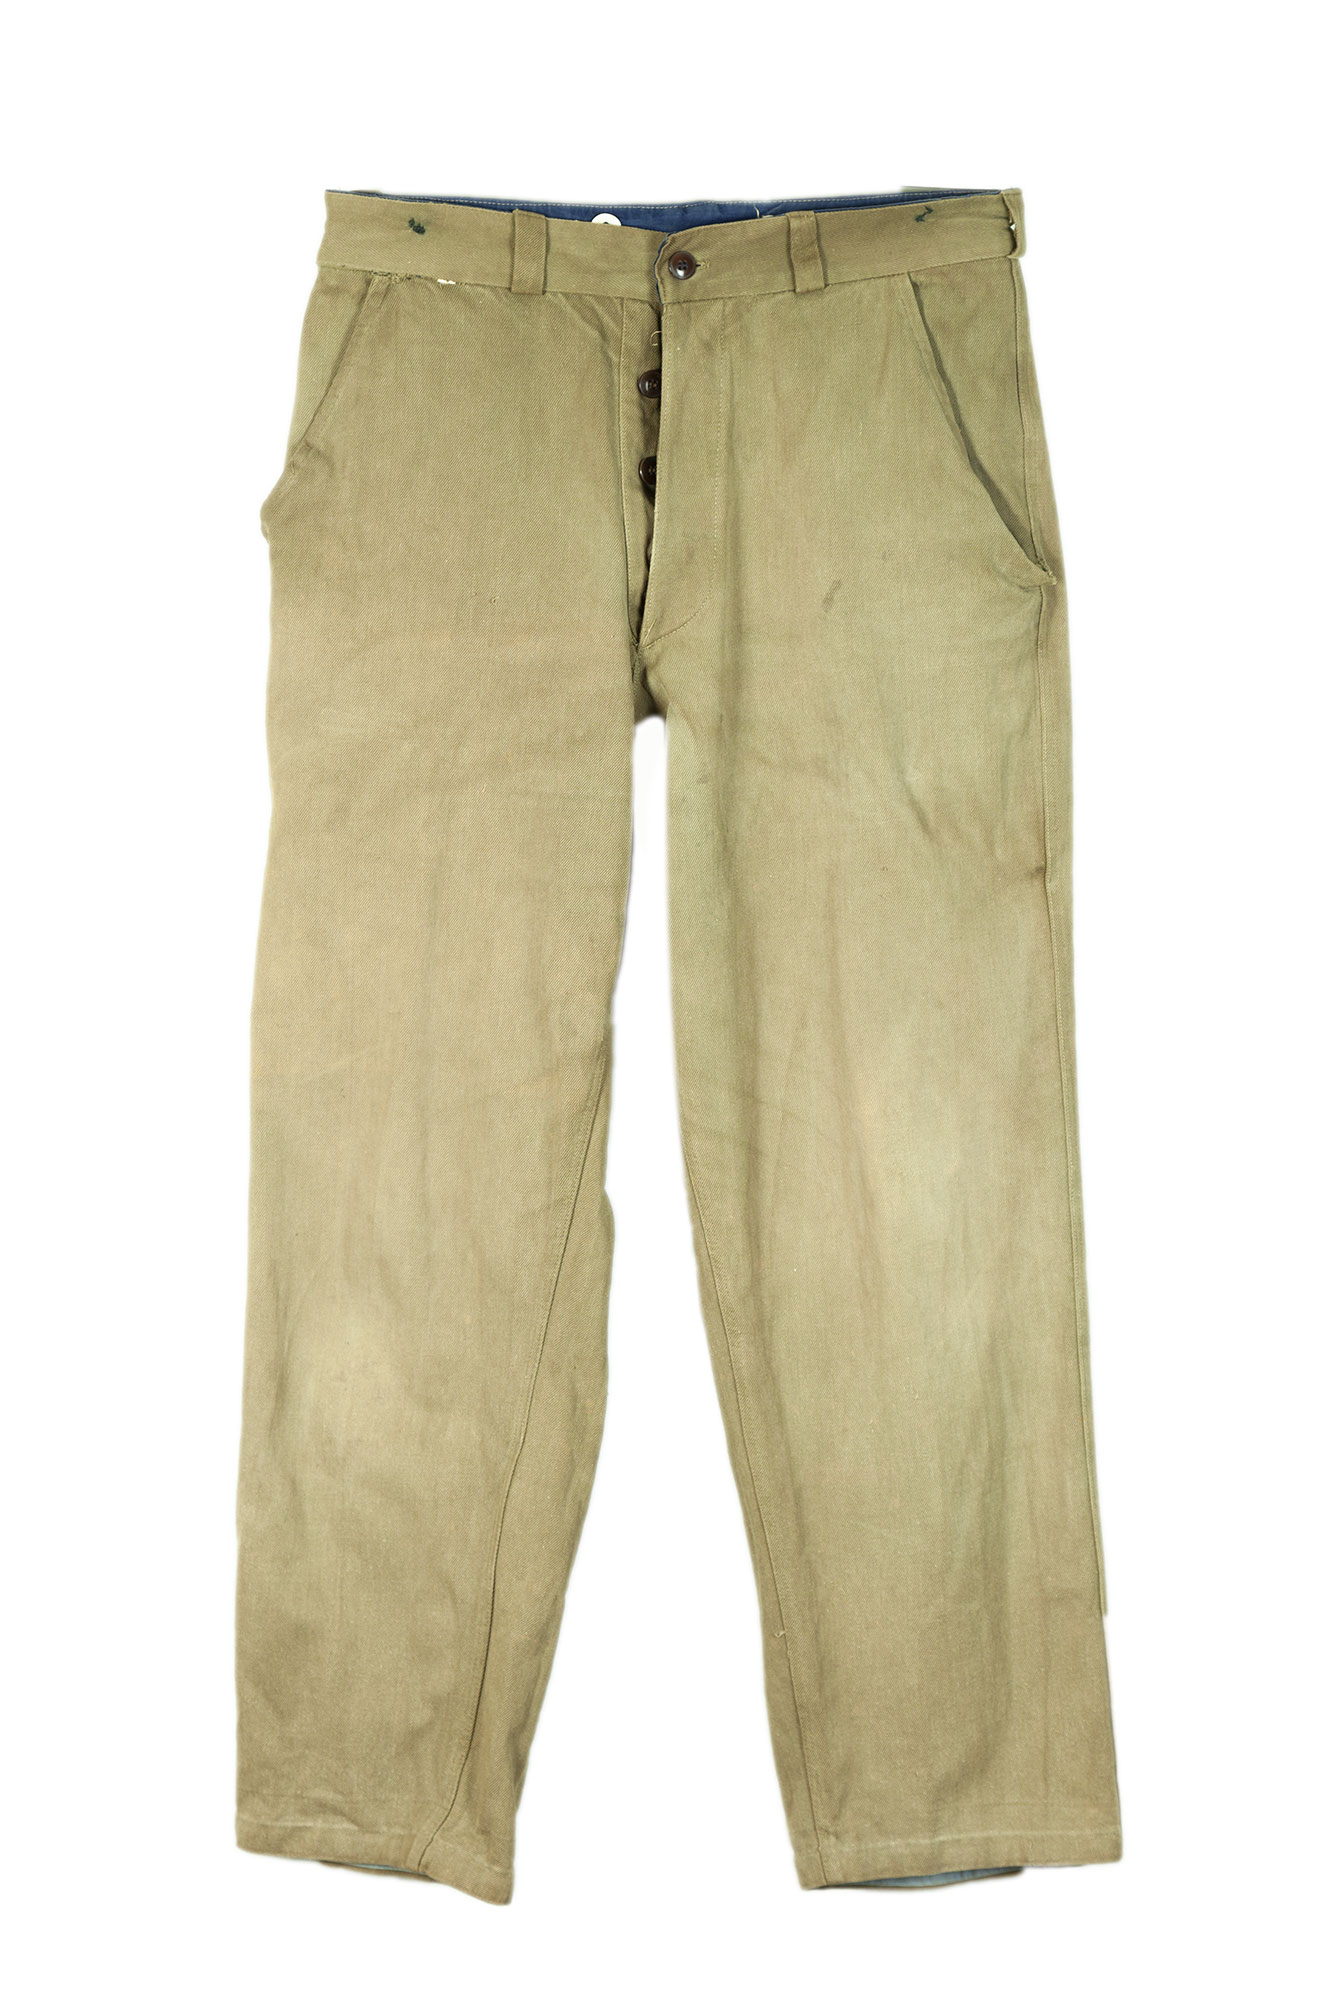 1950's Indochina/ Algeria era french kaki army pants